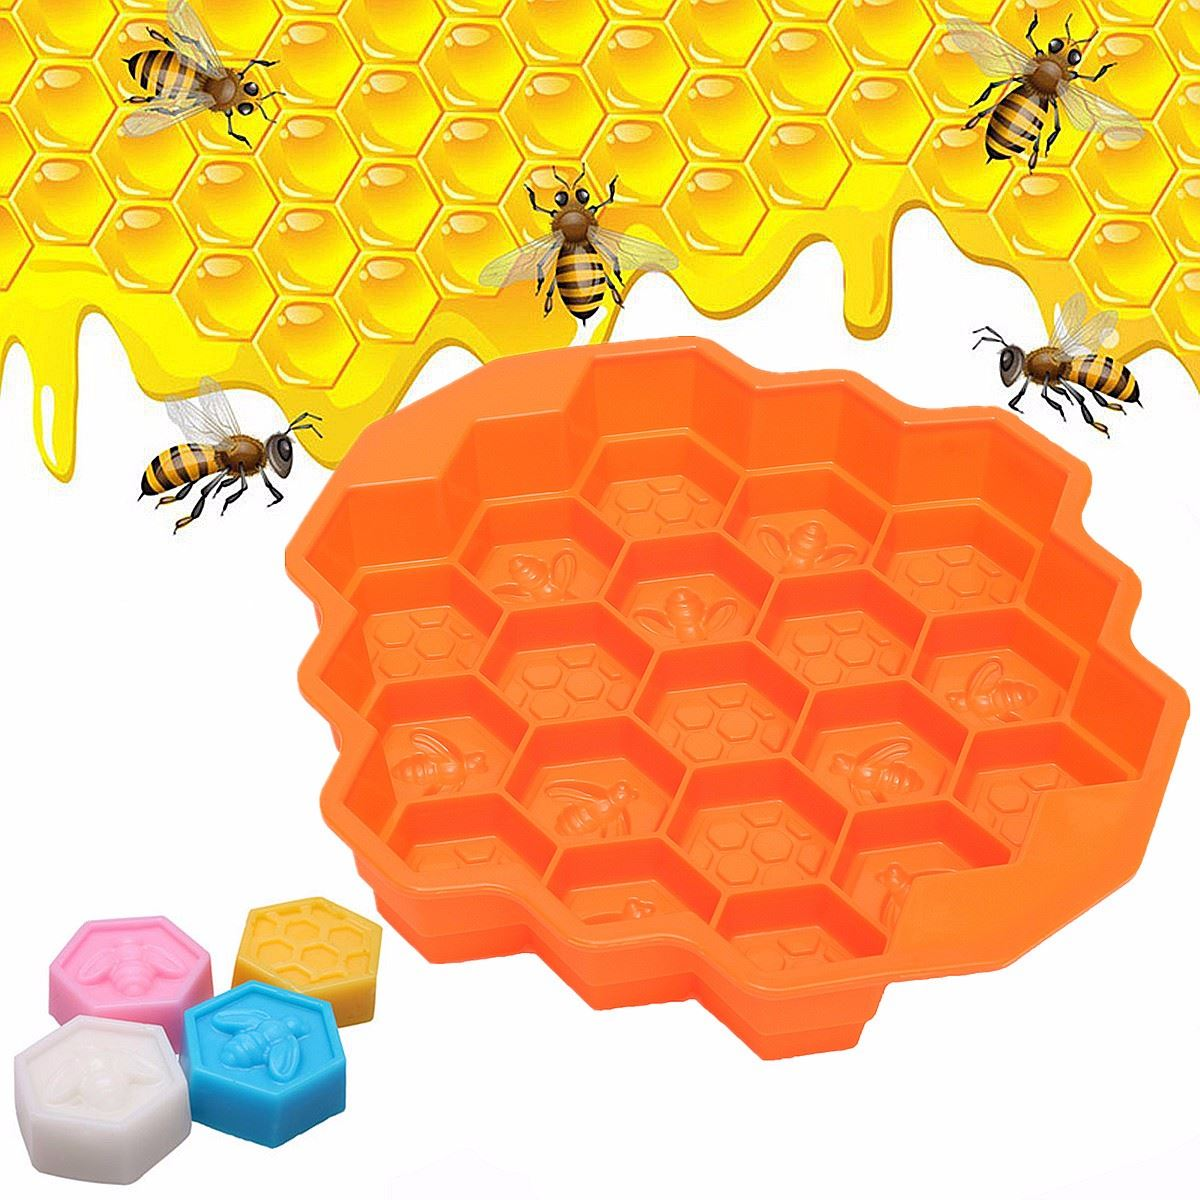 Honey Comb Honey Mold Silicone Cake Pan Comb Bees Soap